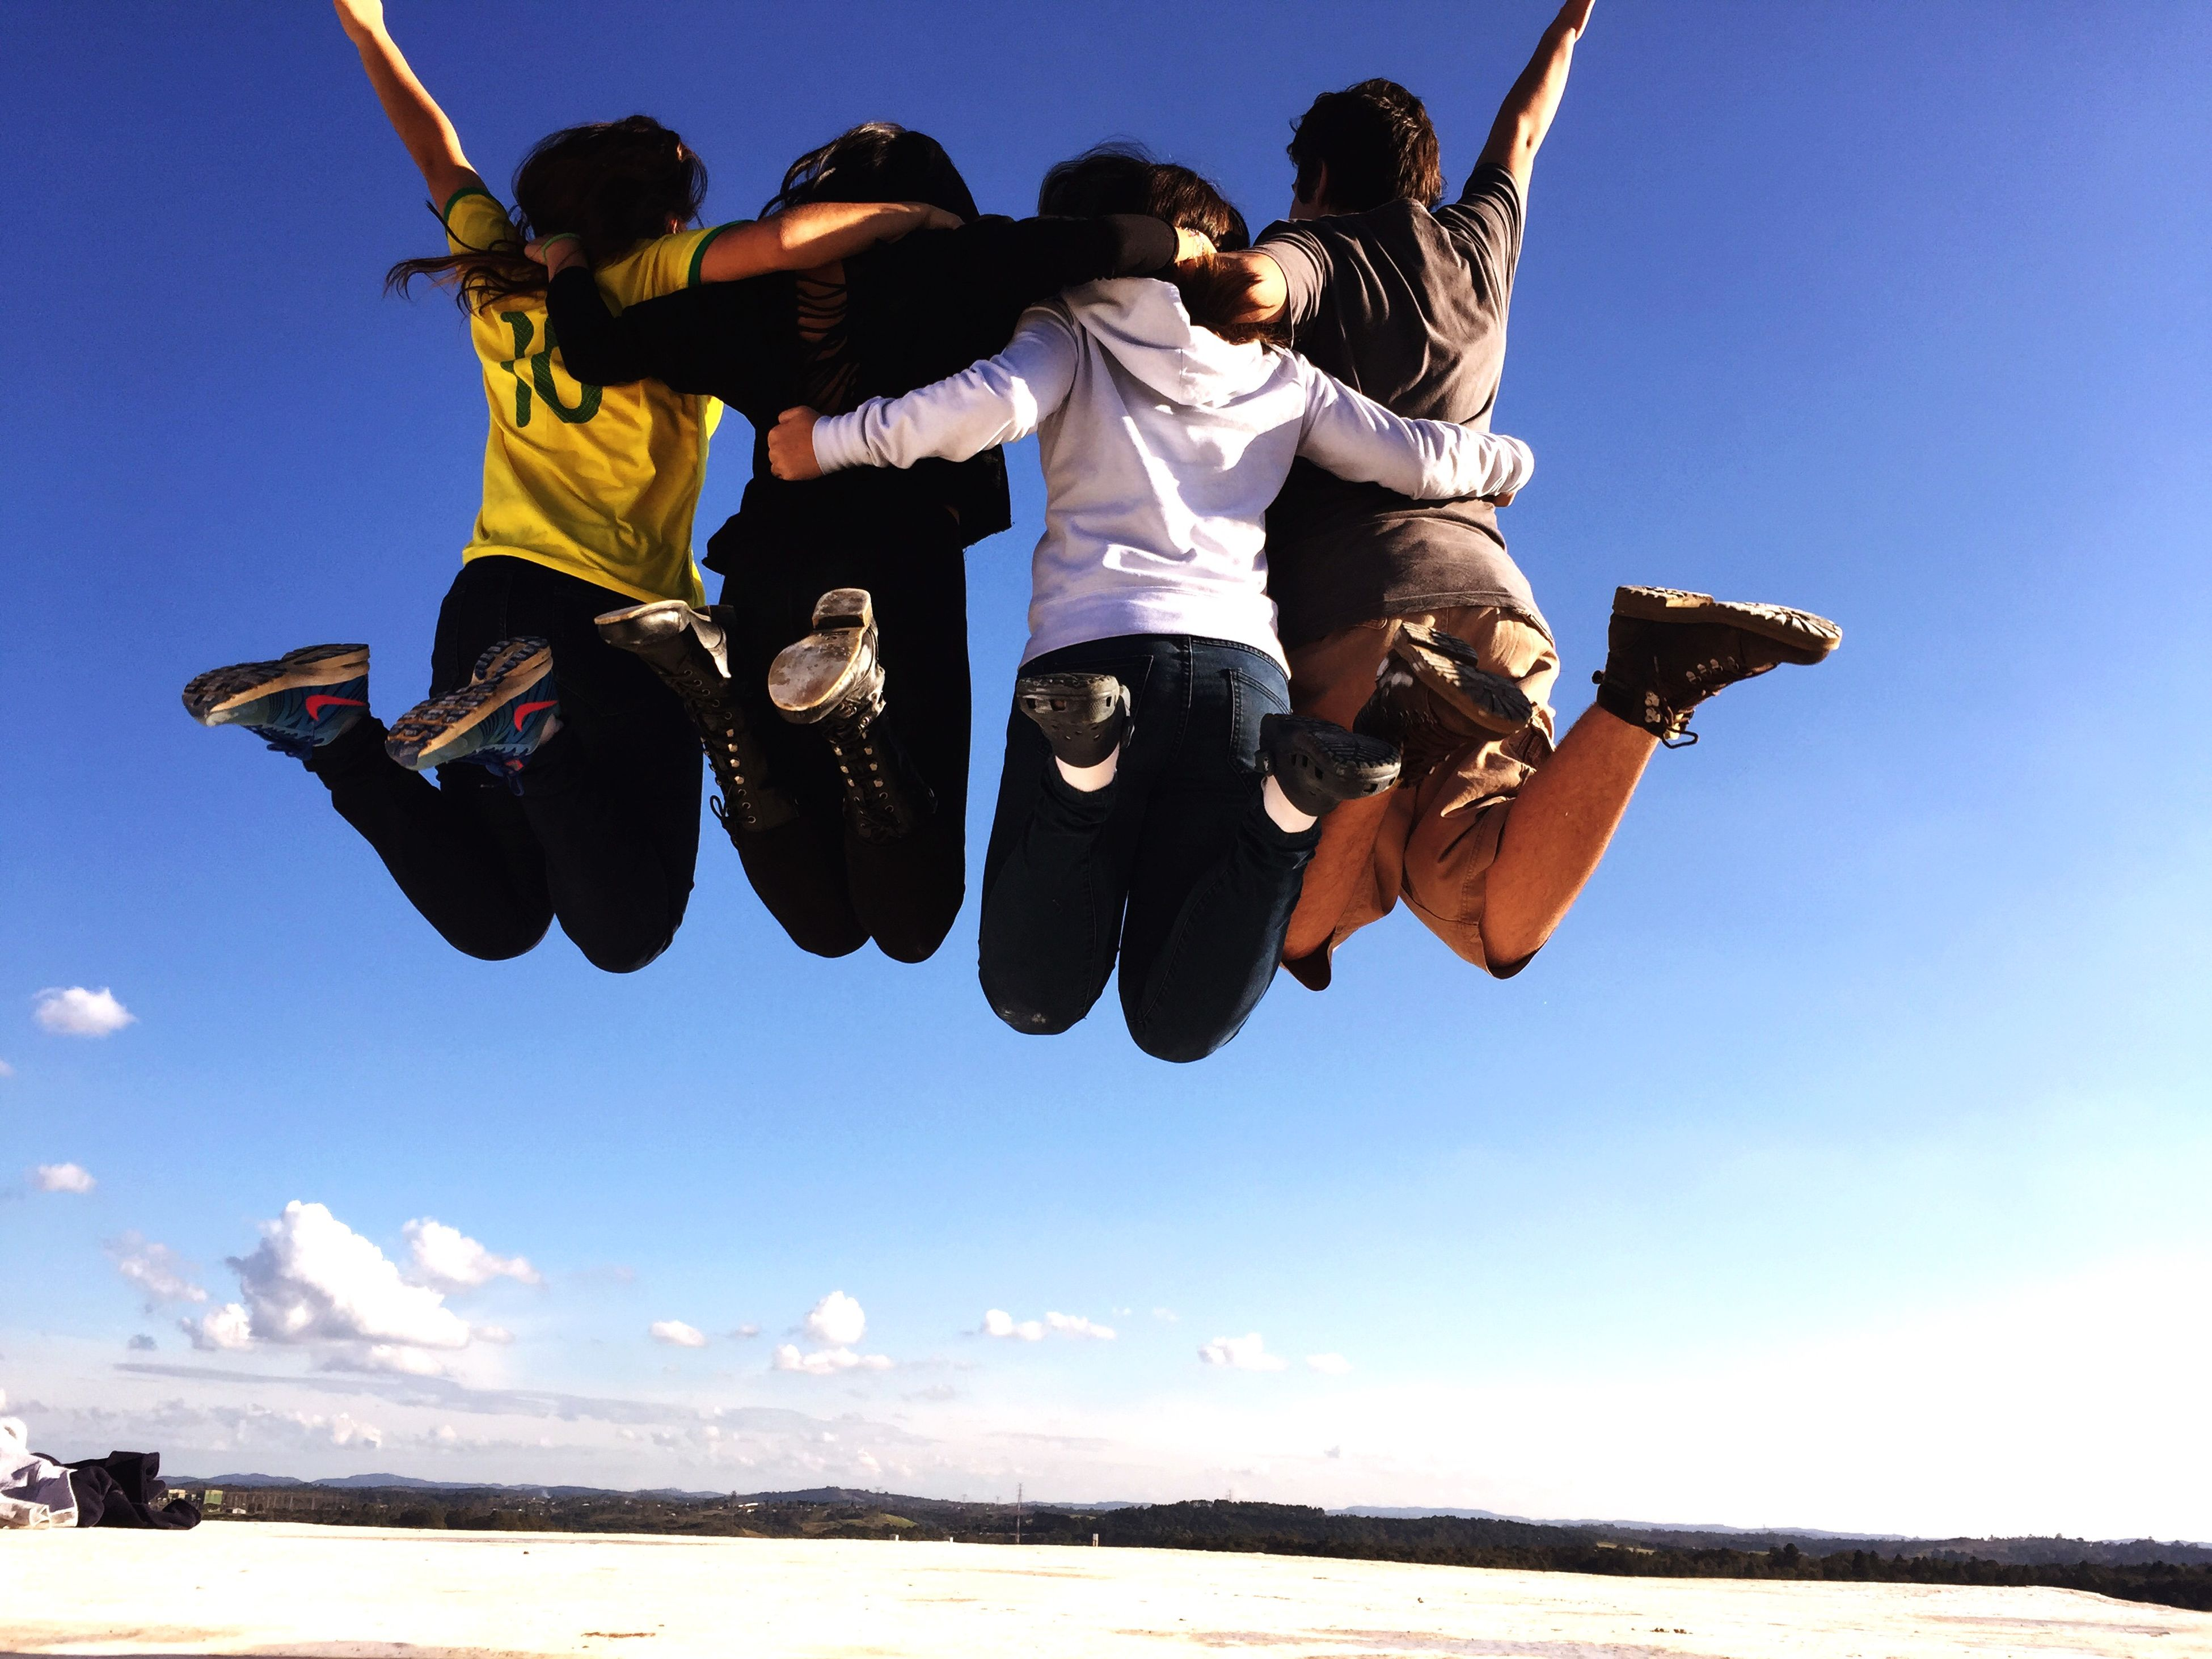 leisure activity, lifestyles, extreme sports, fun, enjoyment, mid-air, men, full length, vacations, blue, jumping, sport, adventure, clear sky, sky, skill, beach